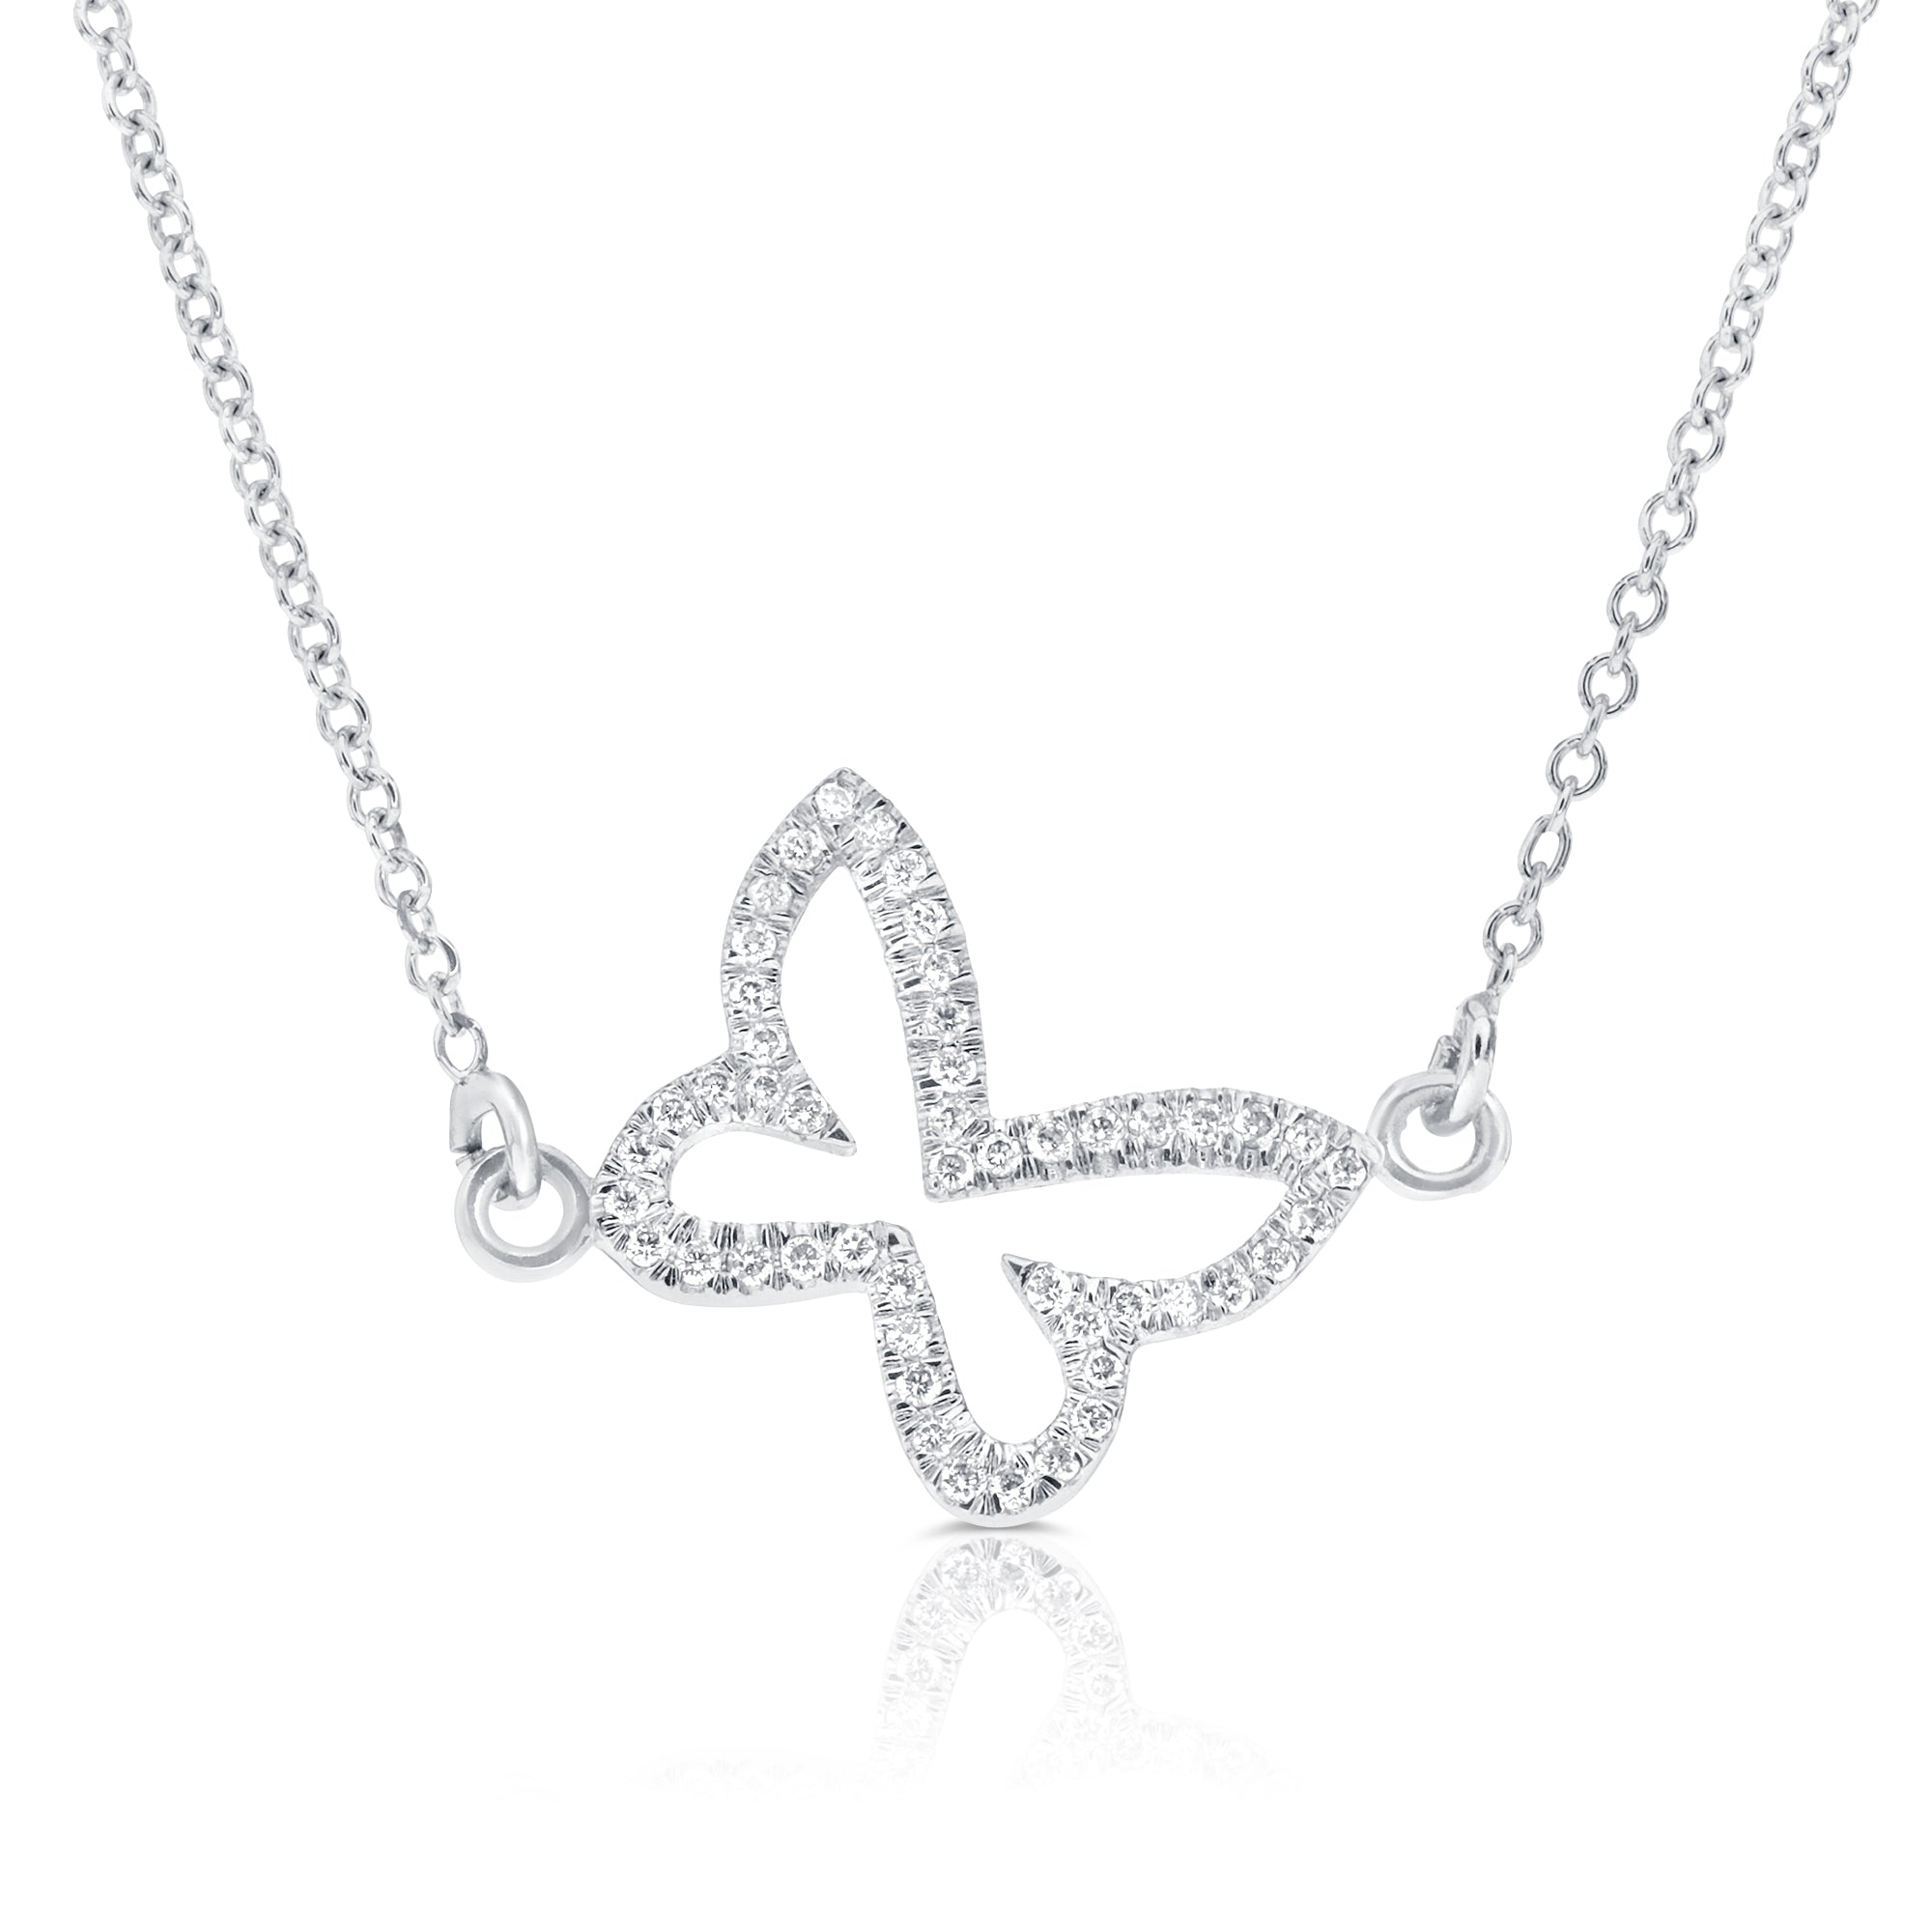 Butterfly Diamond necklace, 0.21ct diamond, 14K white gold-Diamond necklace-Diamond butterfly pendant-Gift for her